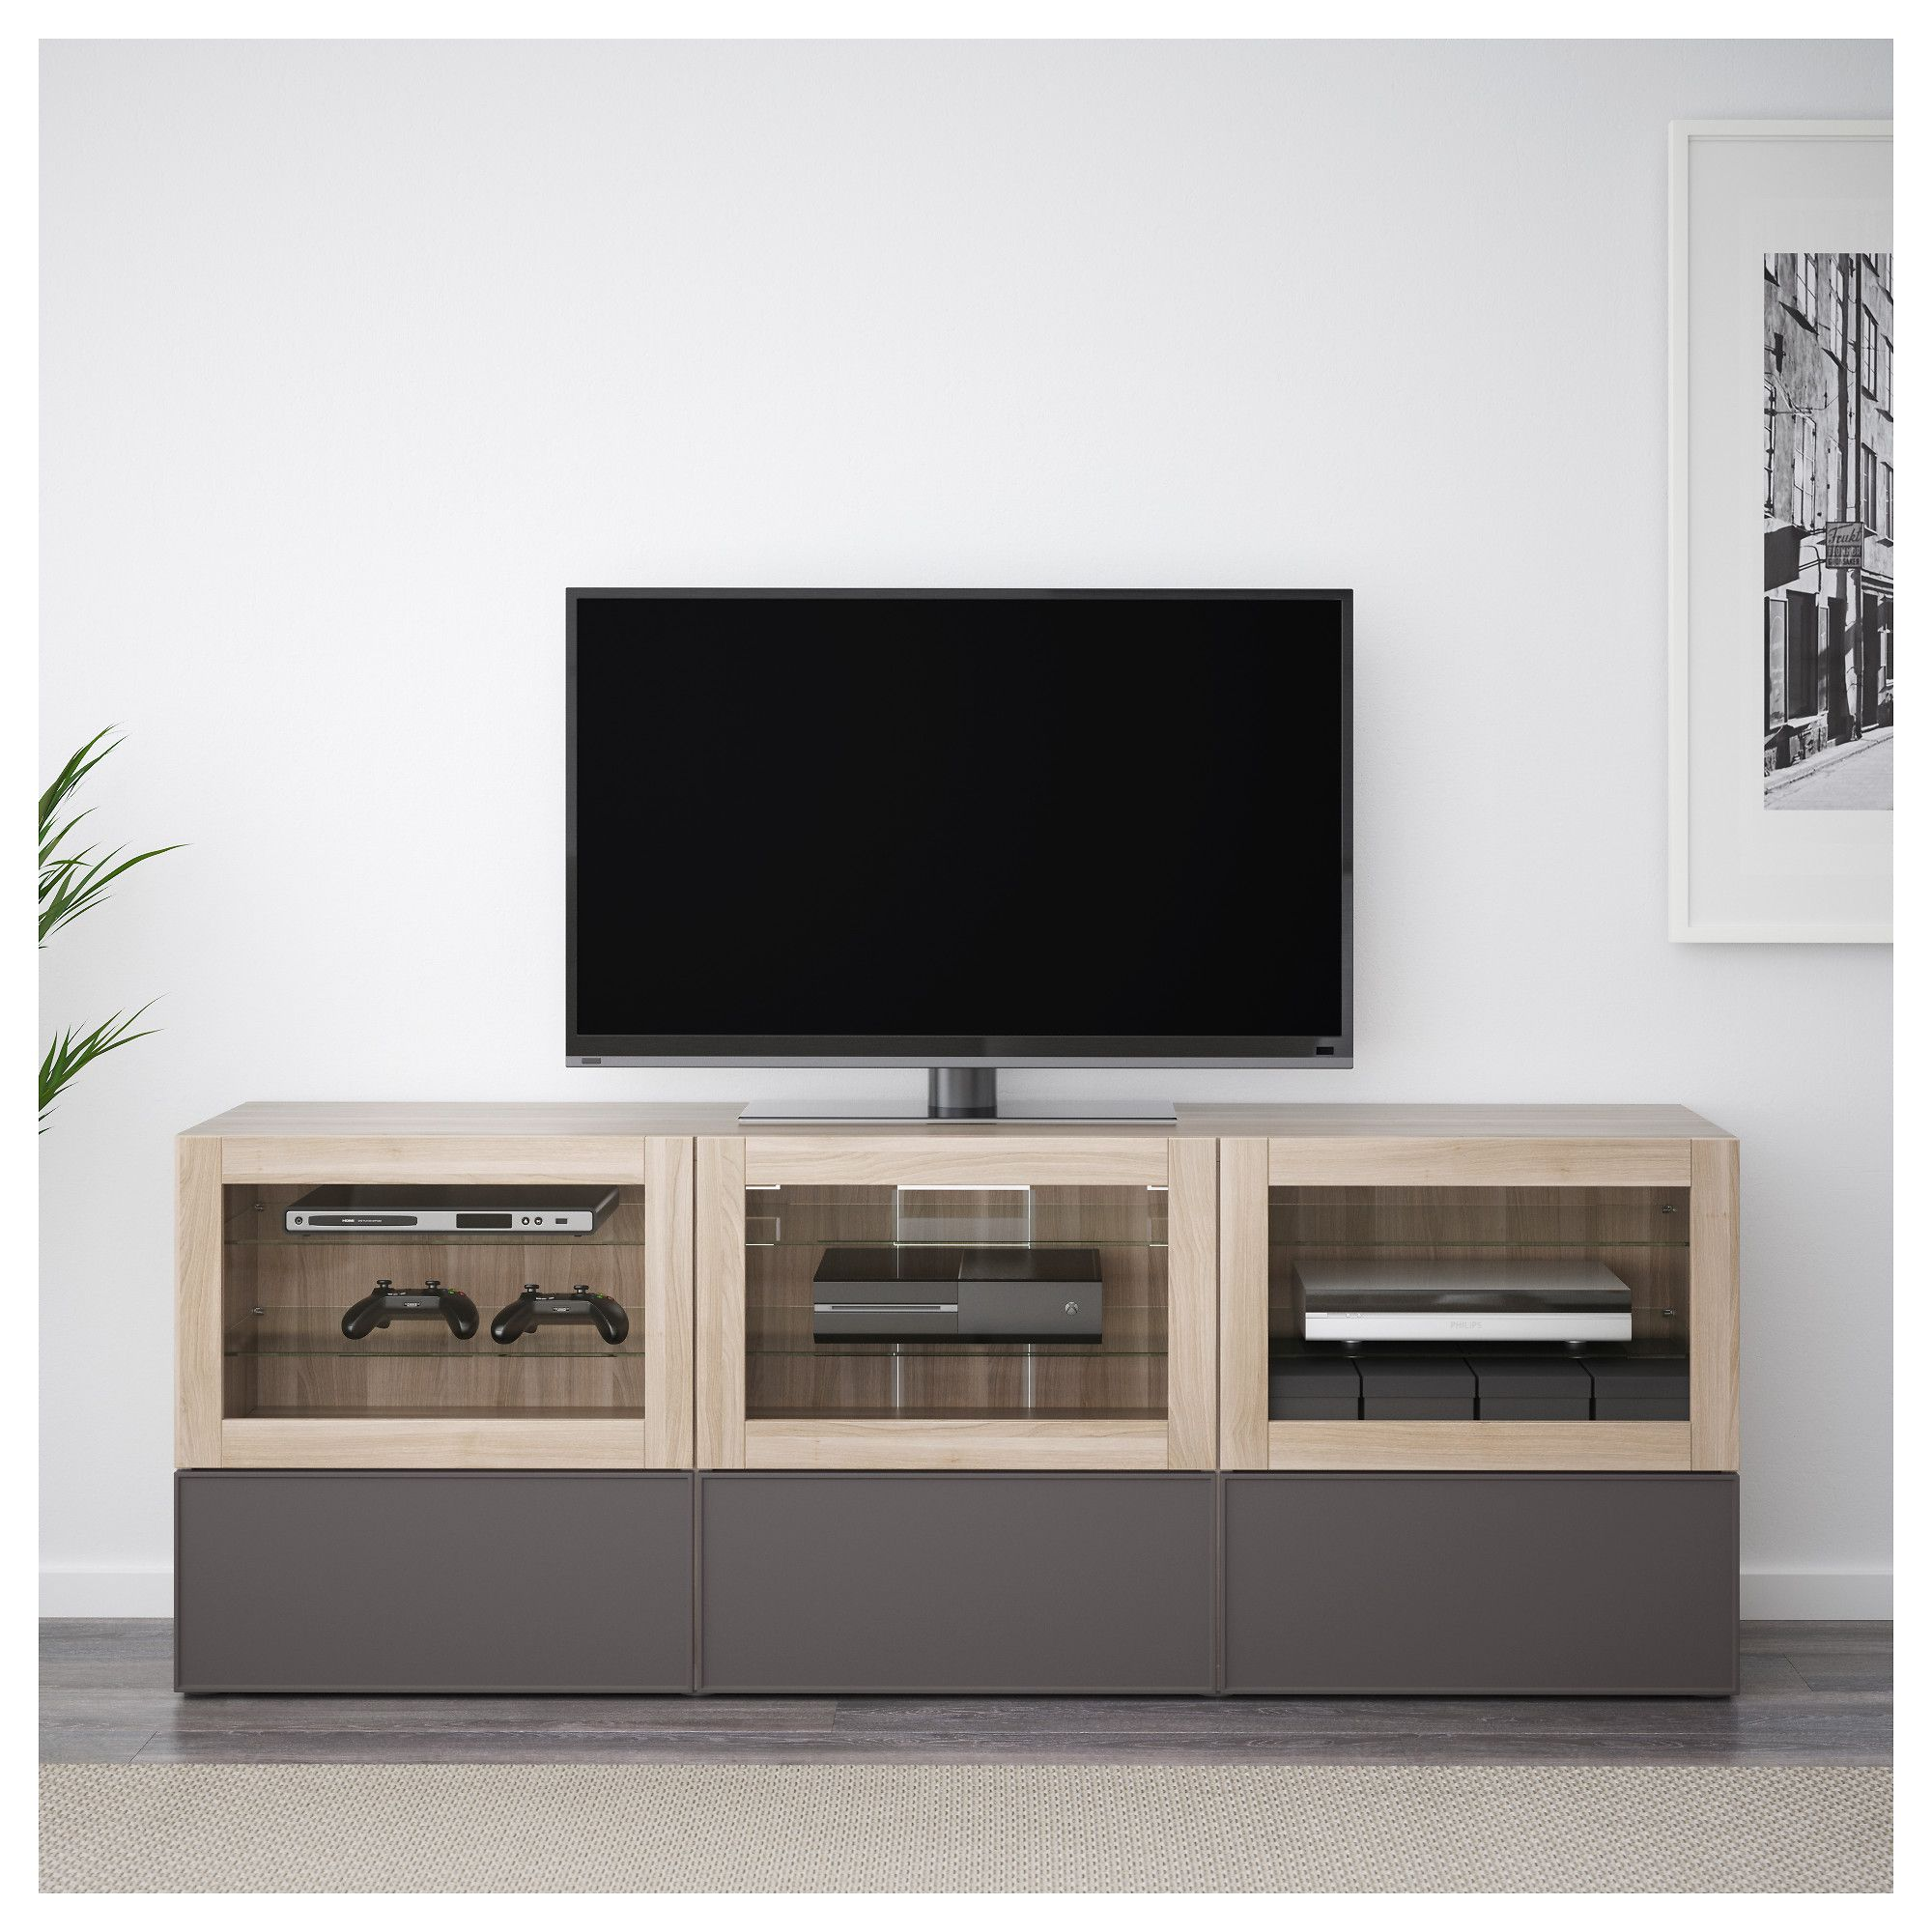 ikea best tv unit with doors and drawers walnut effect light gray rh pinterest com